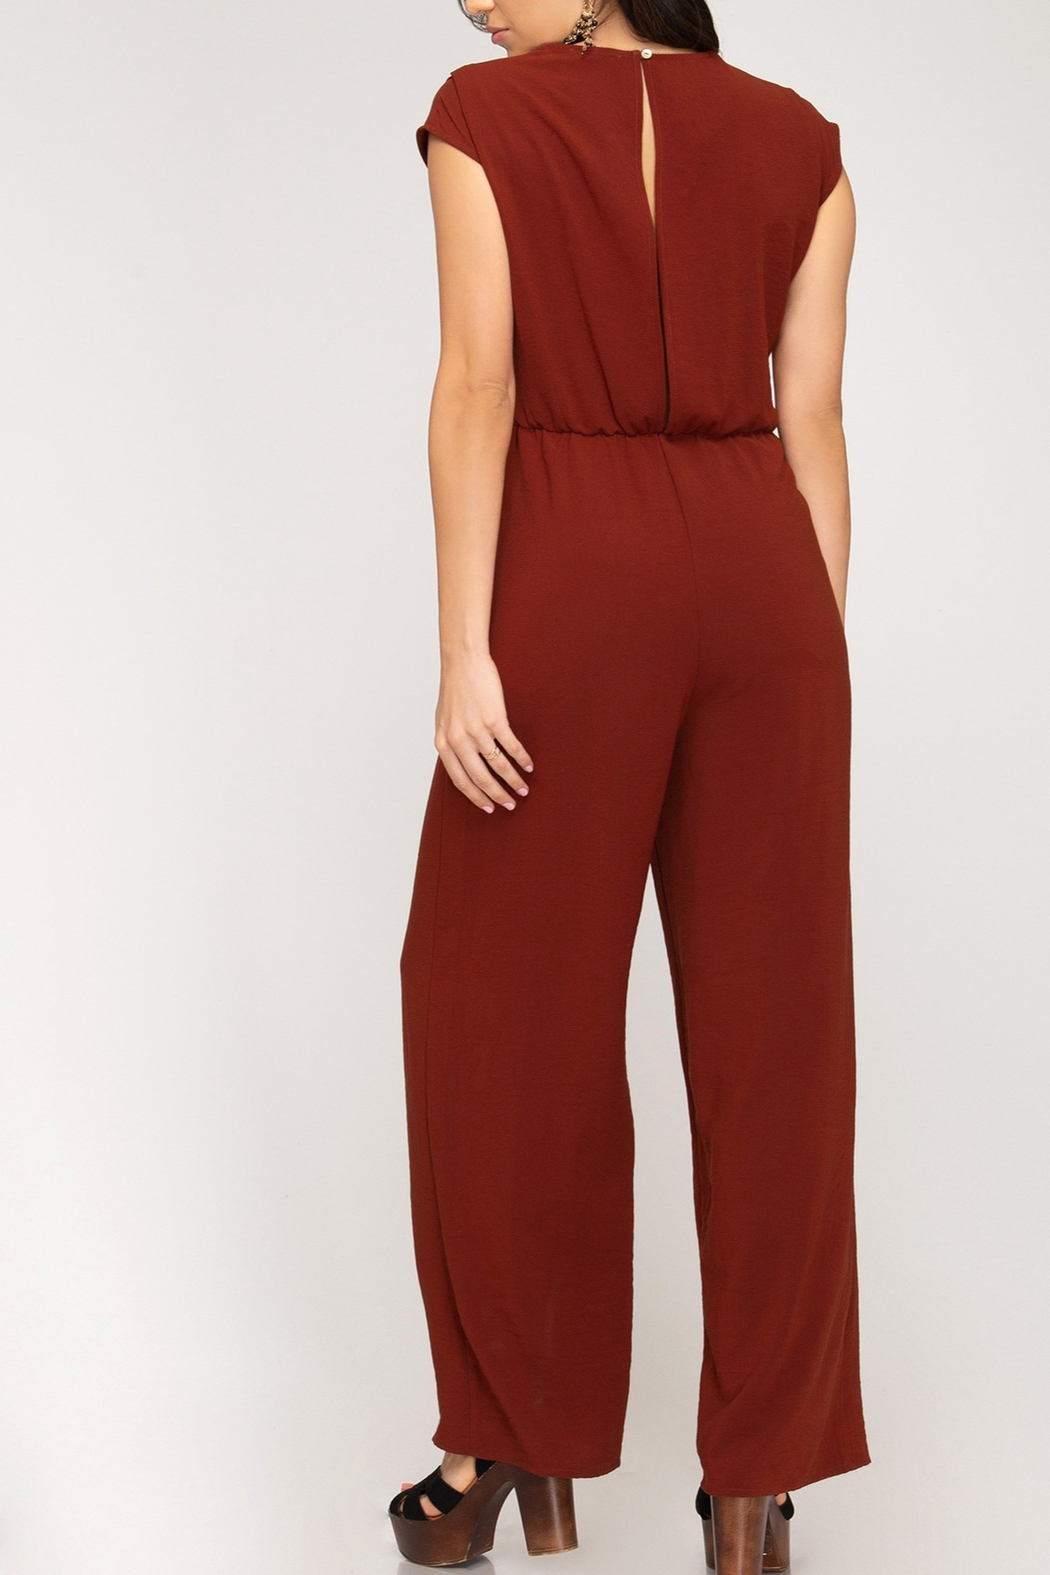 She + Sky In The Moment Jumpsuit - Front Full Image